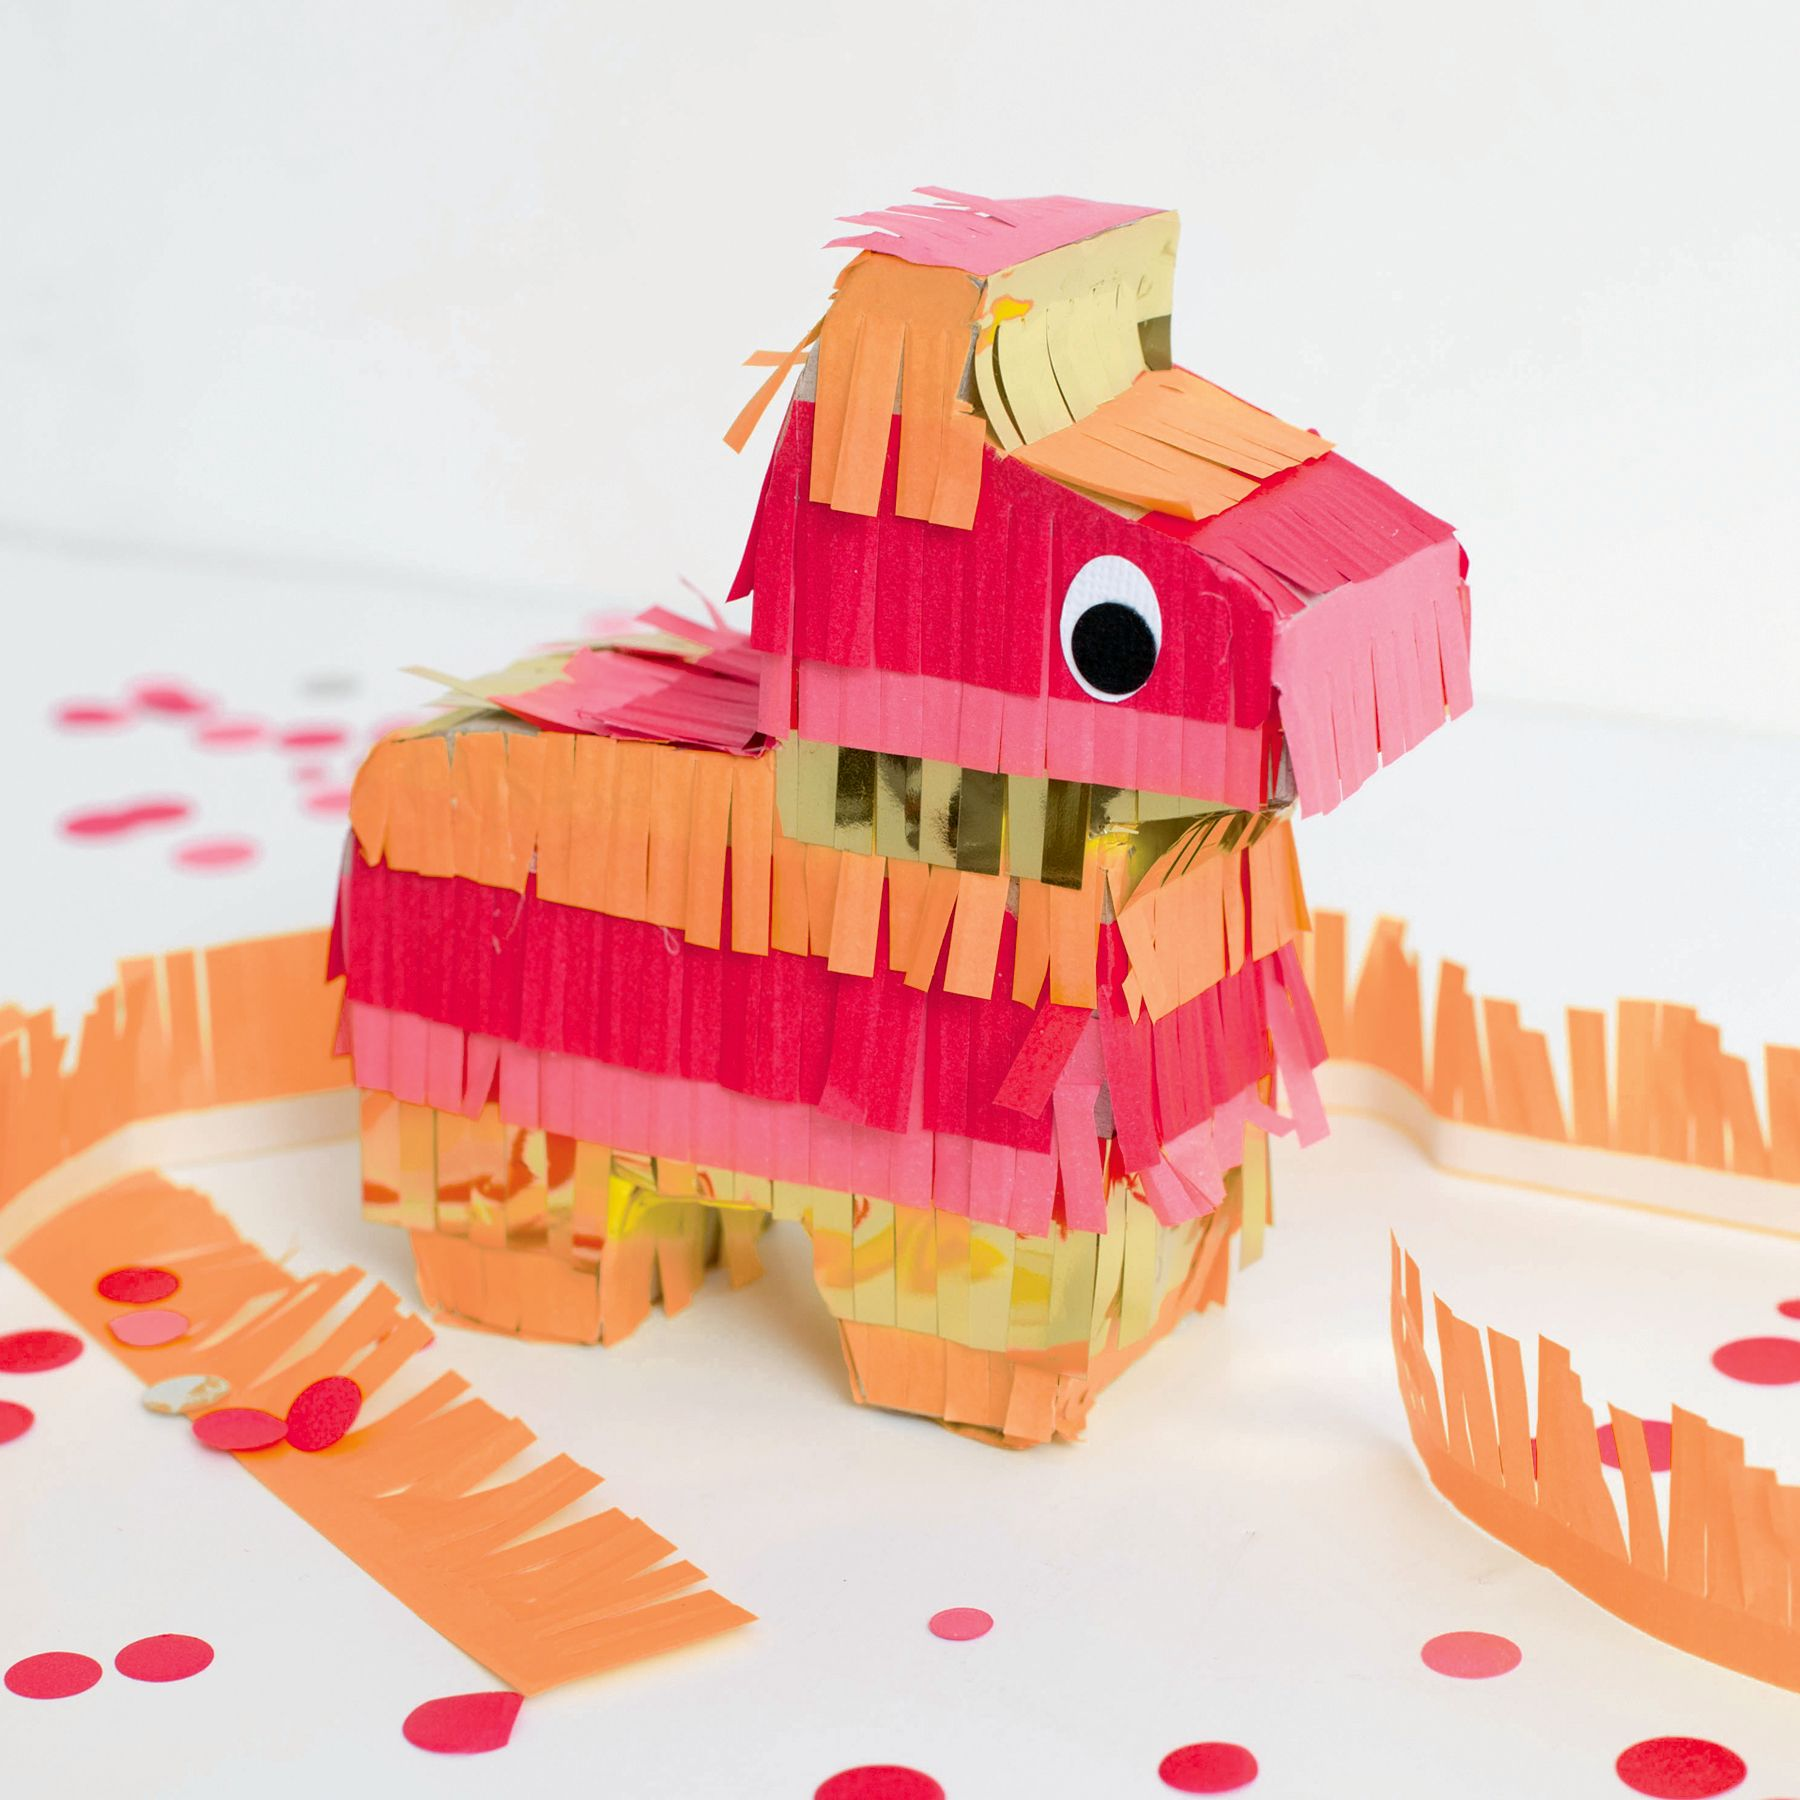 photograph about Donkey Pinata Template Printable named Donkey Mini Pinata against We R Memory Keepers Will allow acquire